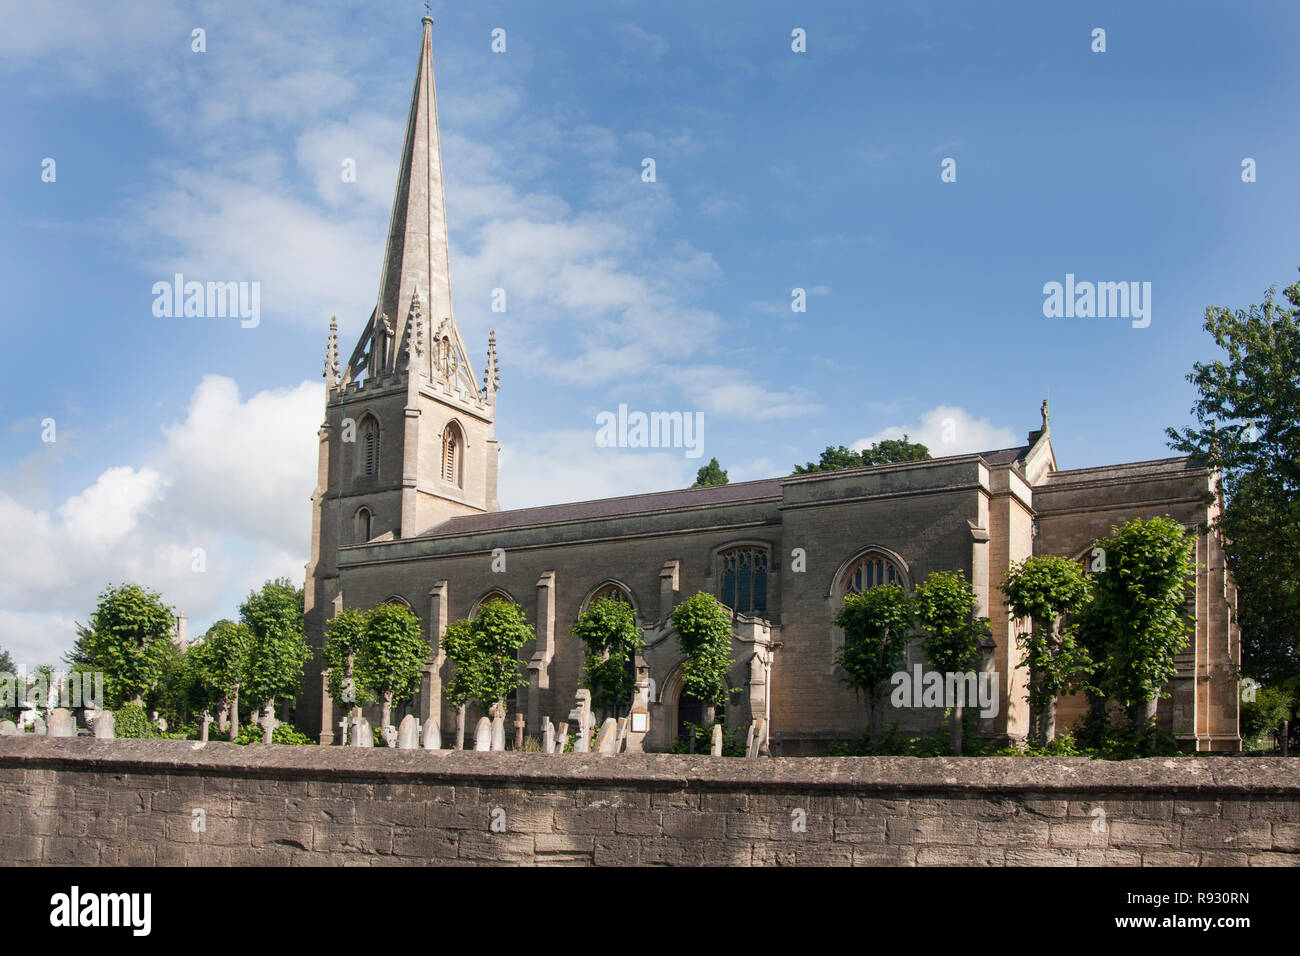 Anglican Christ Church in Conservation District of Bradford-on-Avon, Wiltshire. Bradford Deanery of the Diocese of Salisbury. - Stock Image